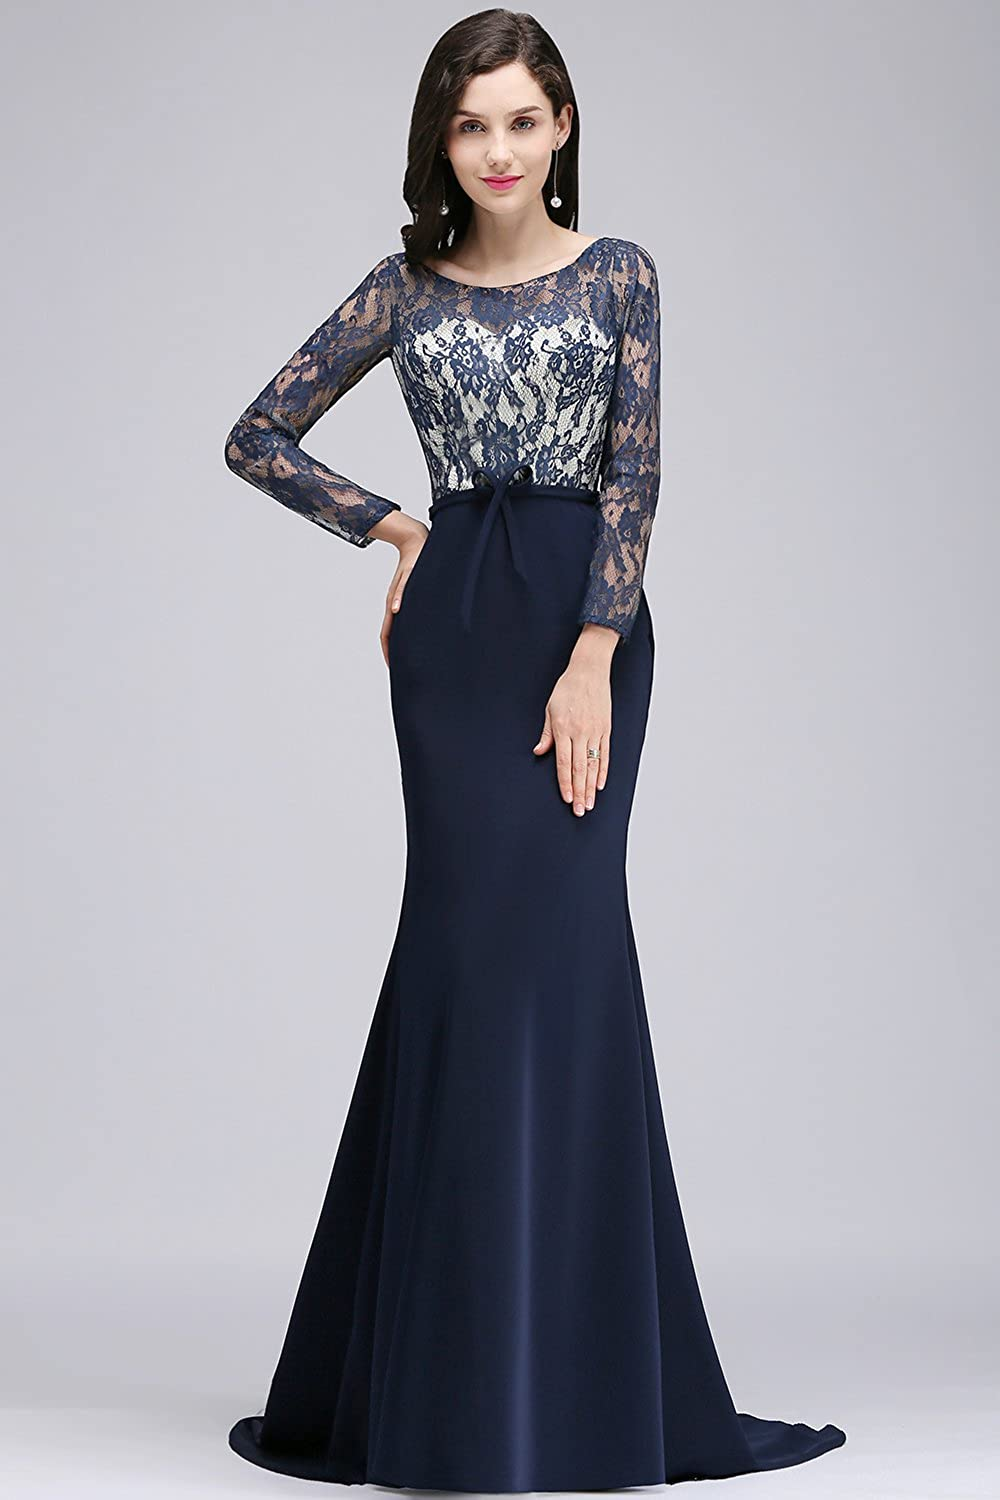 18a95f13b90e MisShow Elegant Lace Long Sleeve Formal Mermaid Evening Prom Gown Maxi  Dresses at Amazon Women s Clothing store